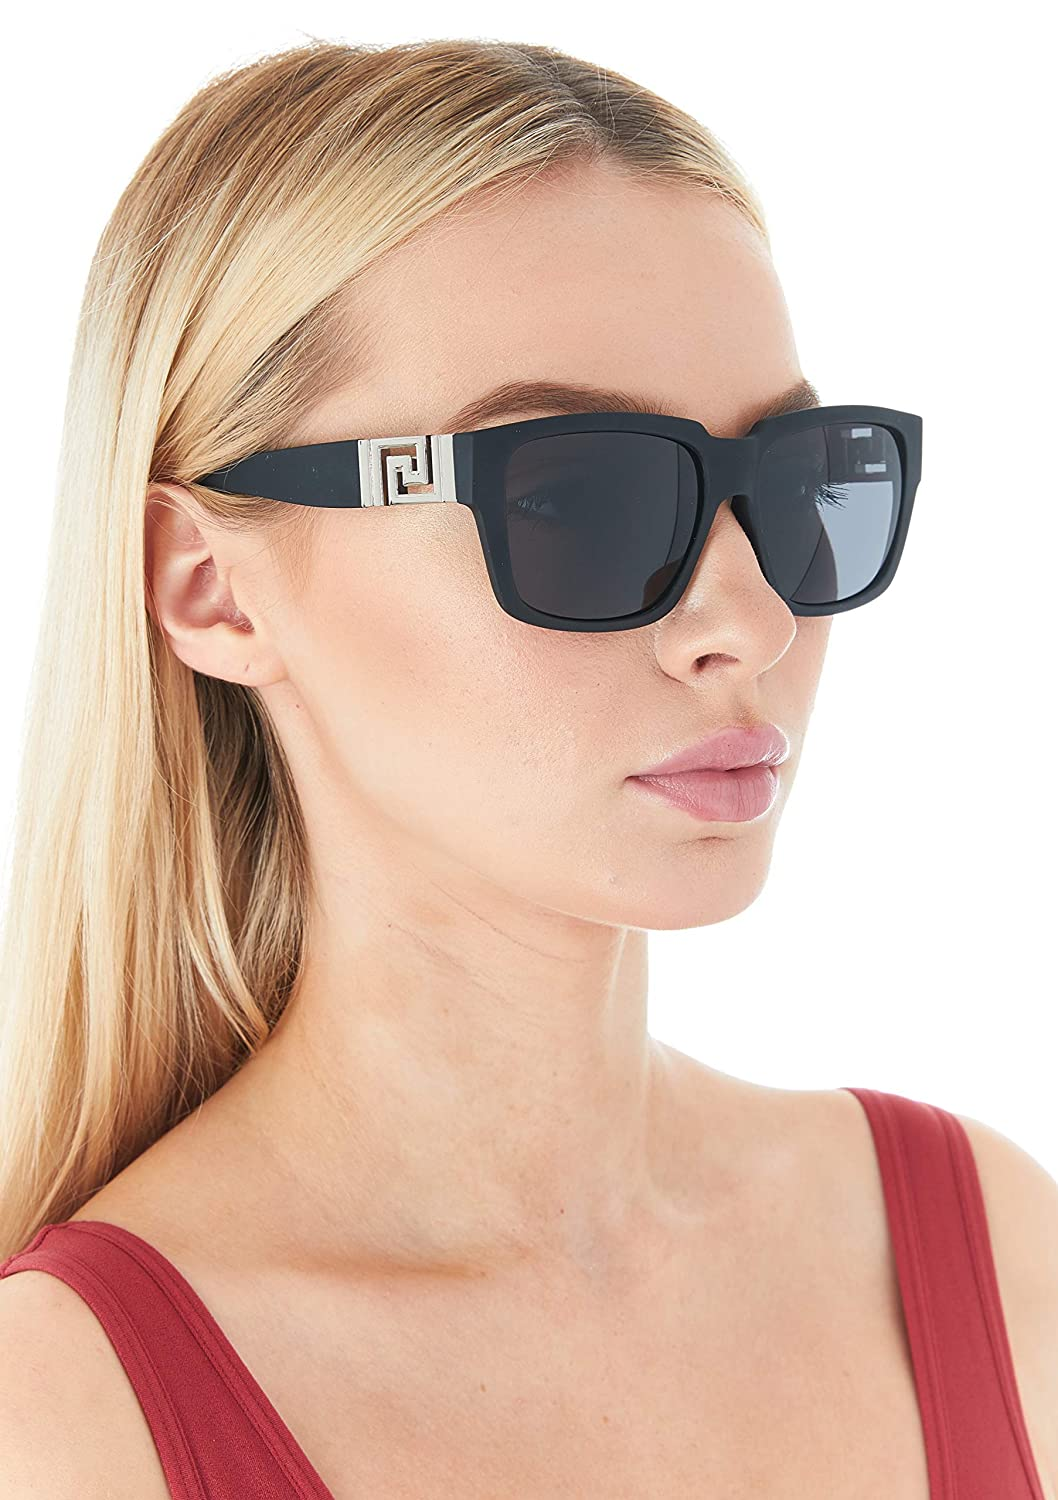 0474d7cb1d2d Amazon.com: DG Sunglasses for Women Oversized Eyewear Fashion - Assorted  Styles & Colors (Black/Silver, SG402): Clothing